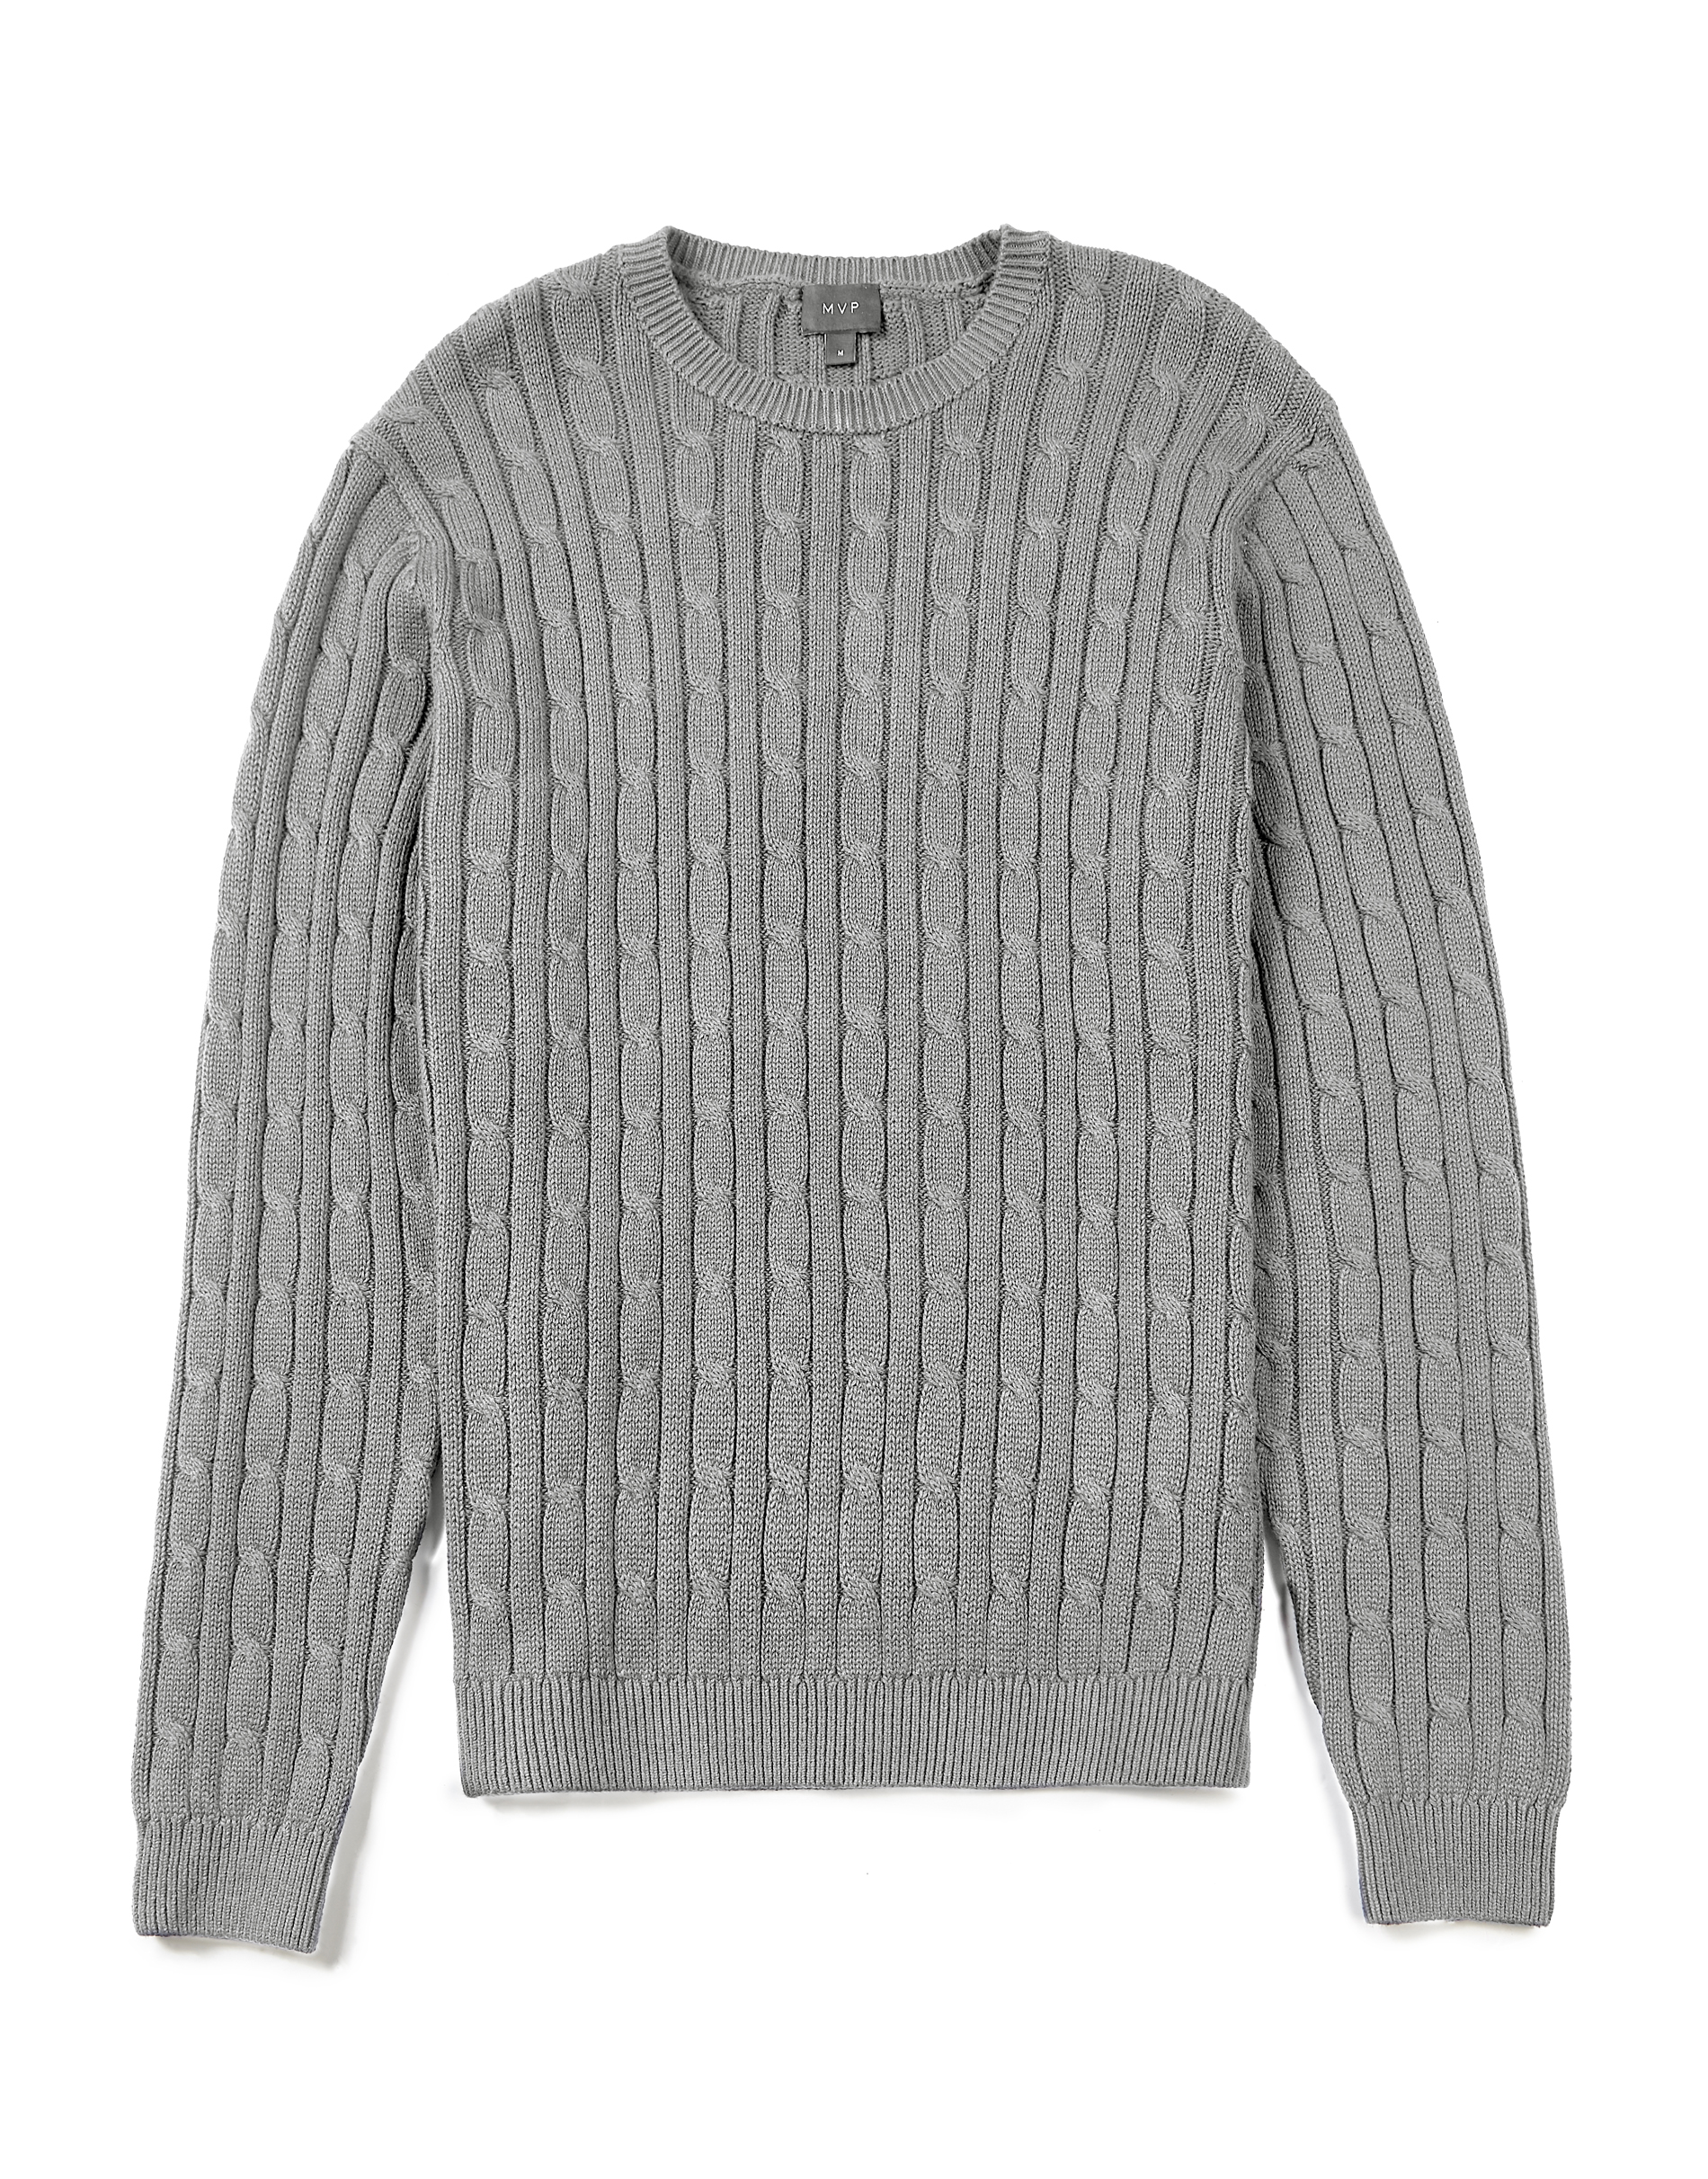 MVP GREY MELANGE Hainton Cotton Cable Knit Jumper